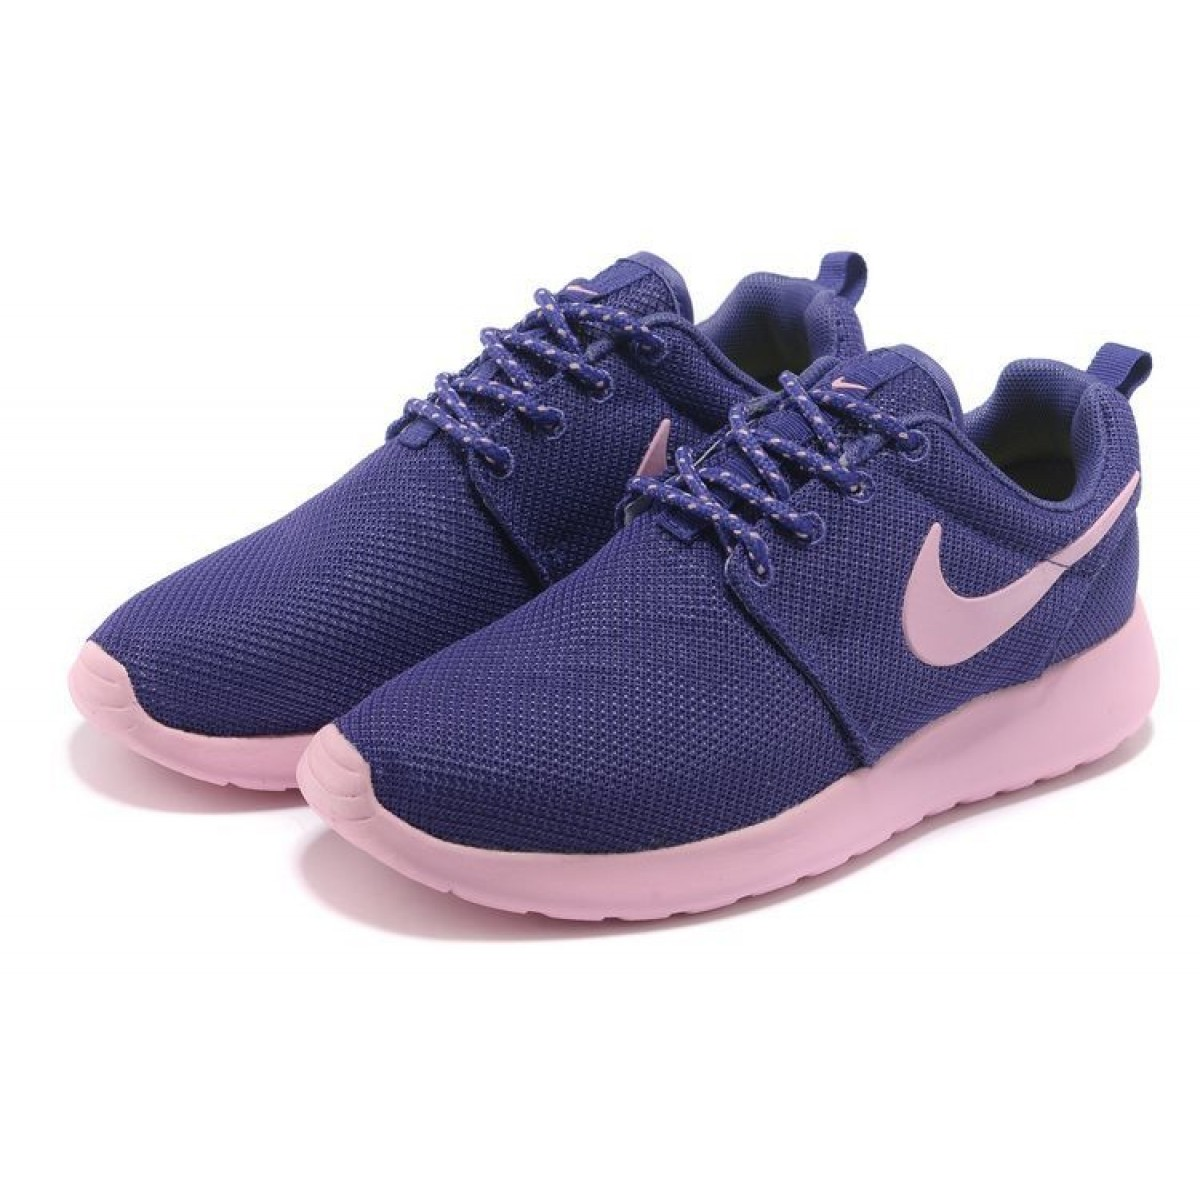 nike free run pas cher chine chaussures nike roshe run. Black Bedroom Furniture Sets. Home Design Ideas